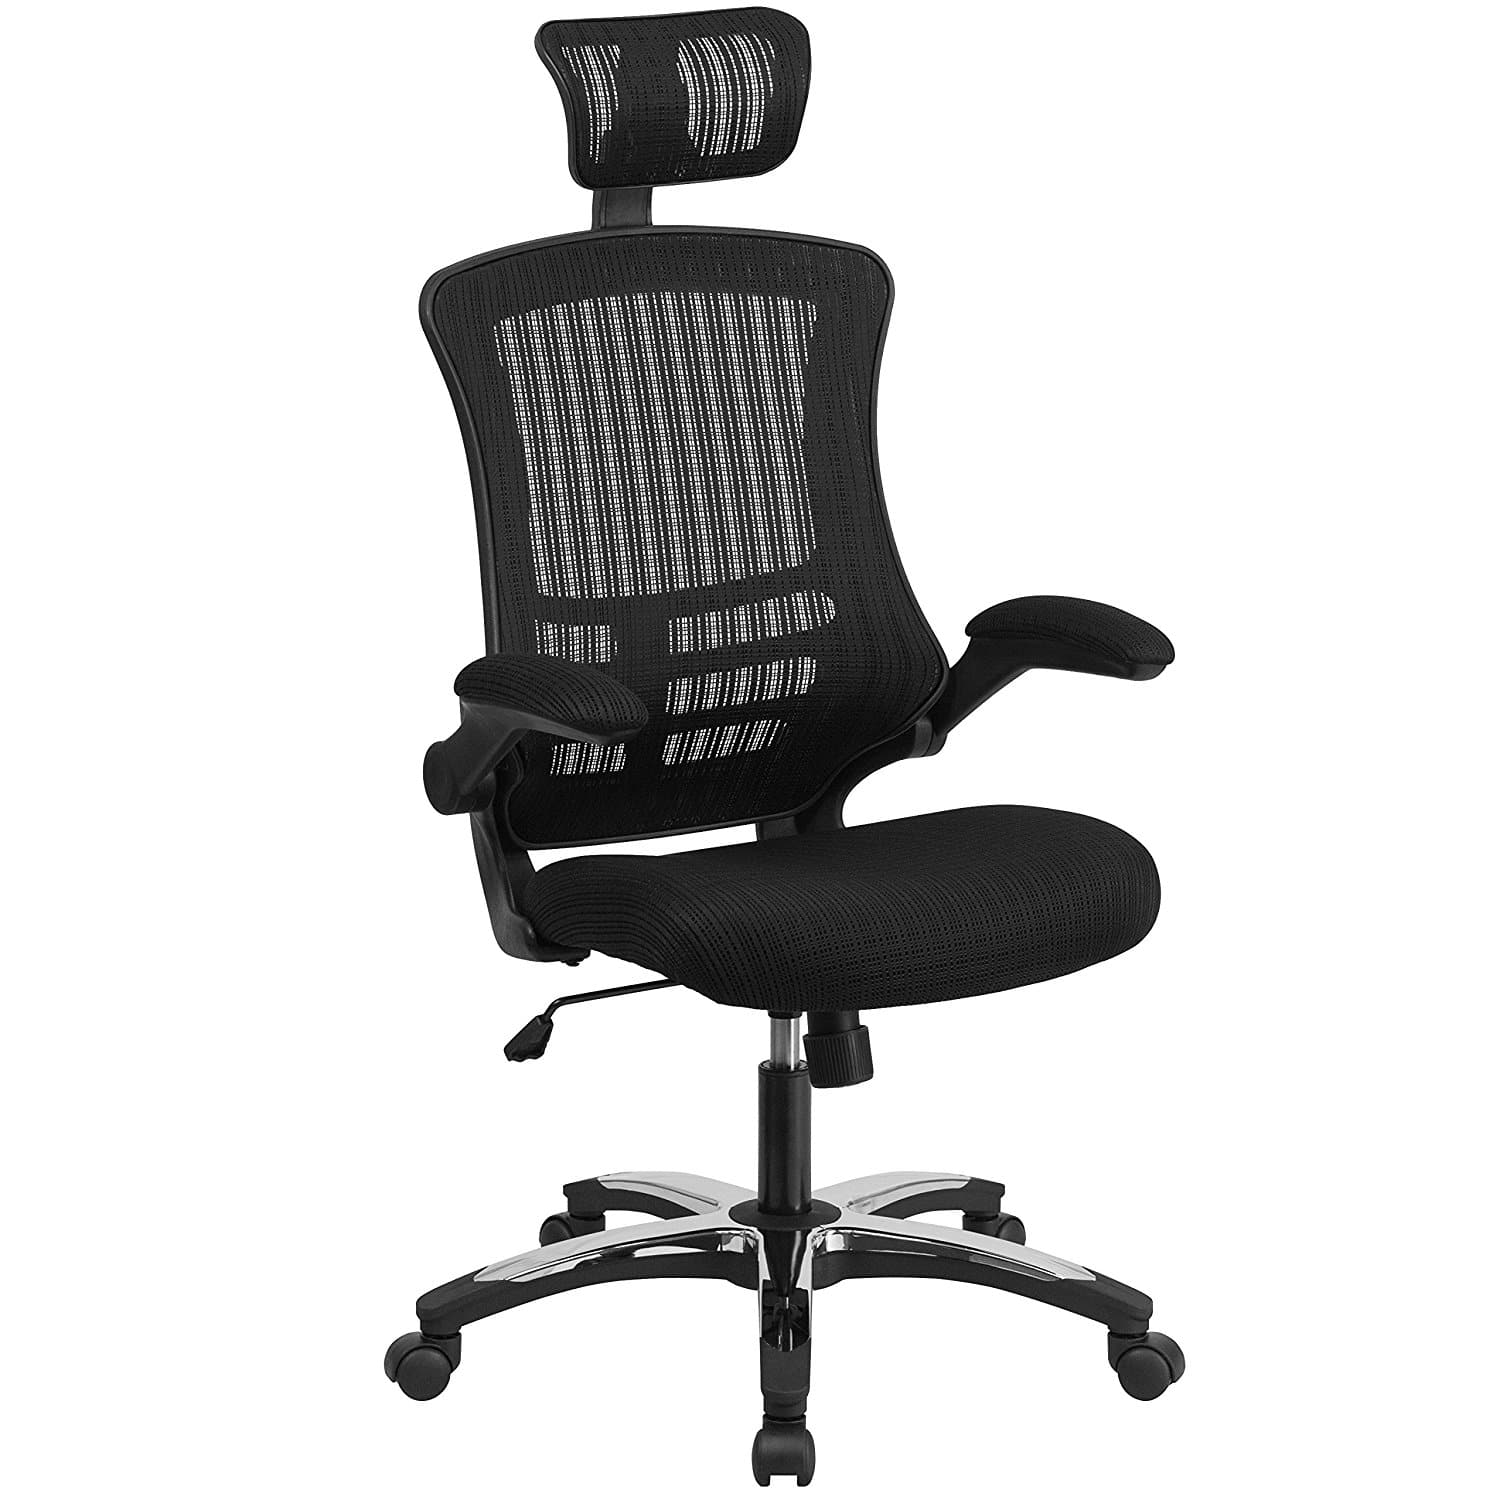 Top 34 Best Office Chairs in 34  JUST™ Creative